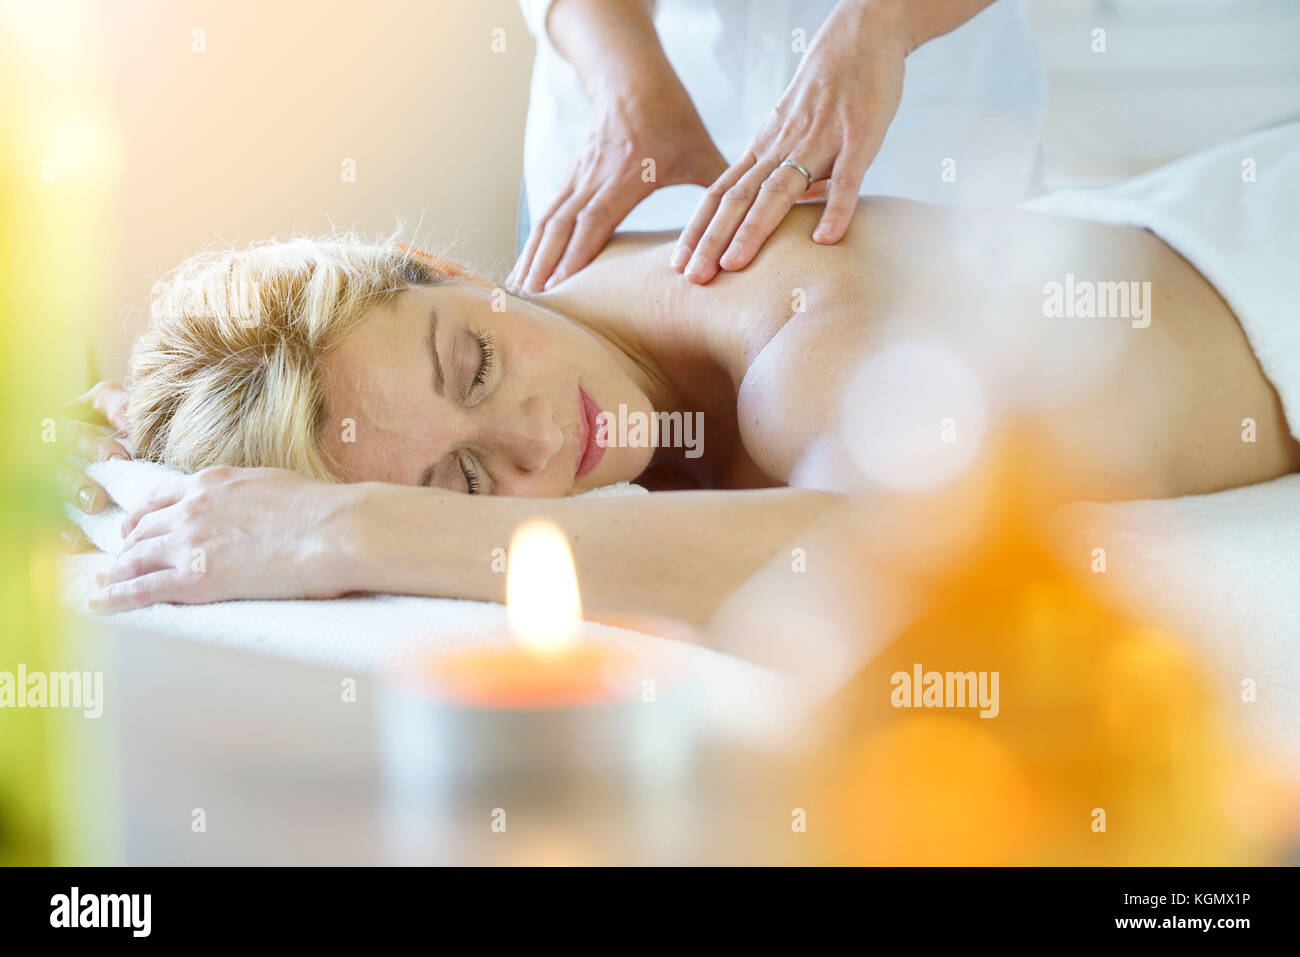 Woman laying on massage table - Stock Image